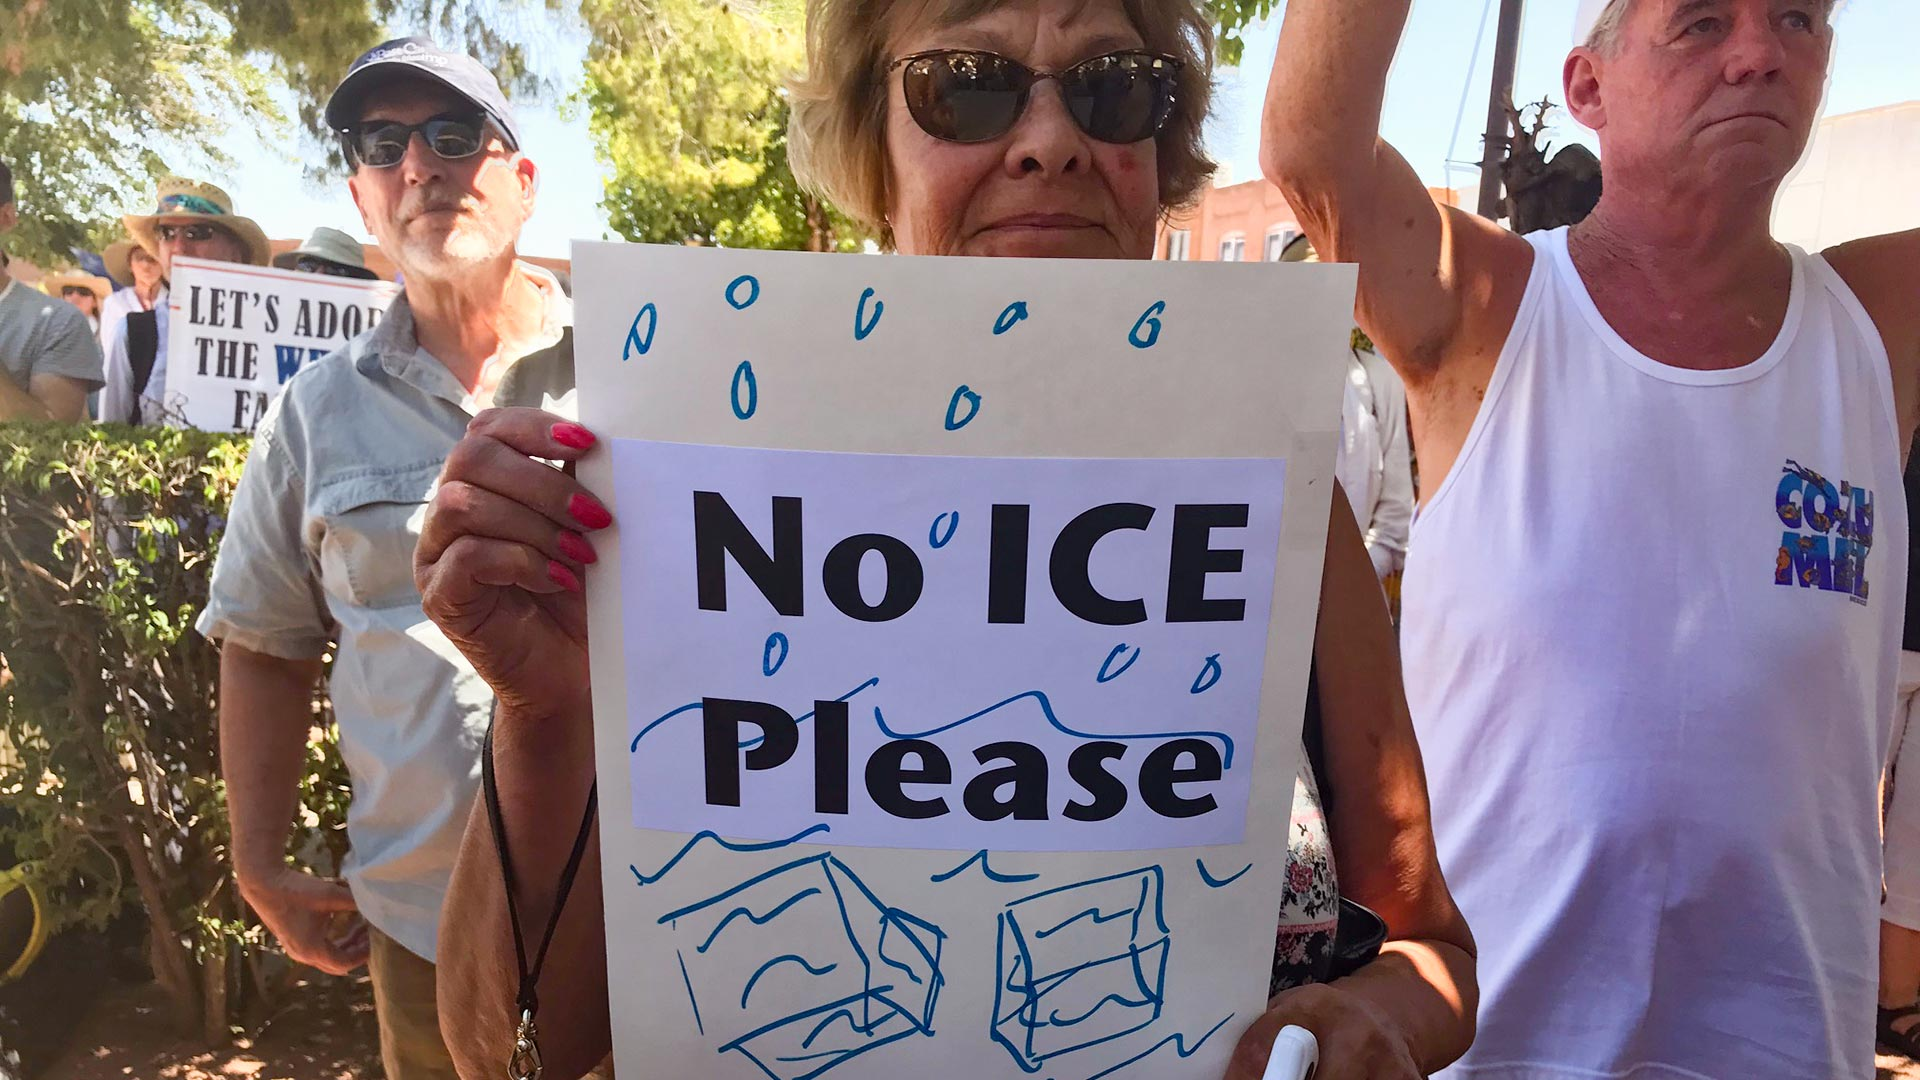 A protester holds a sign at a border demonstration in Nogales, Arizona. (June, 2018)